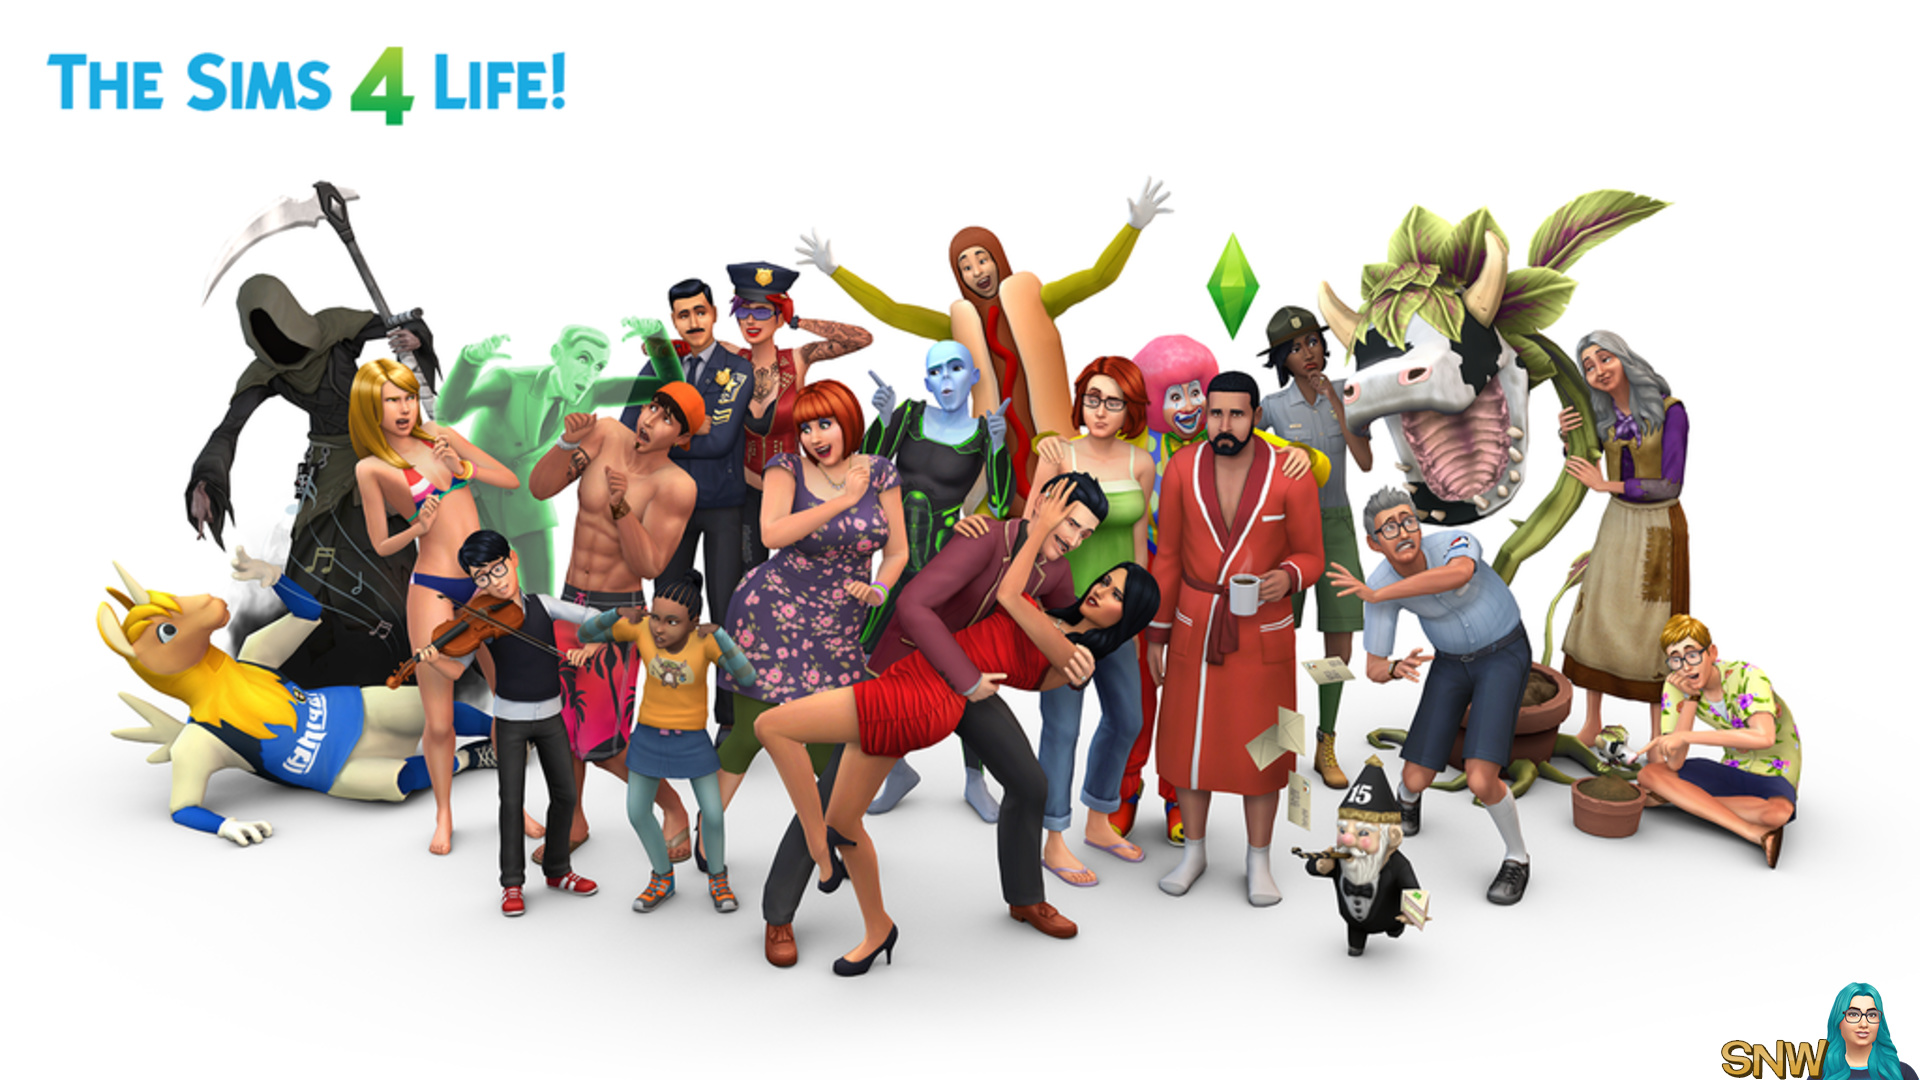 The Sims 4 Life